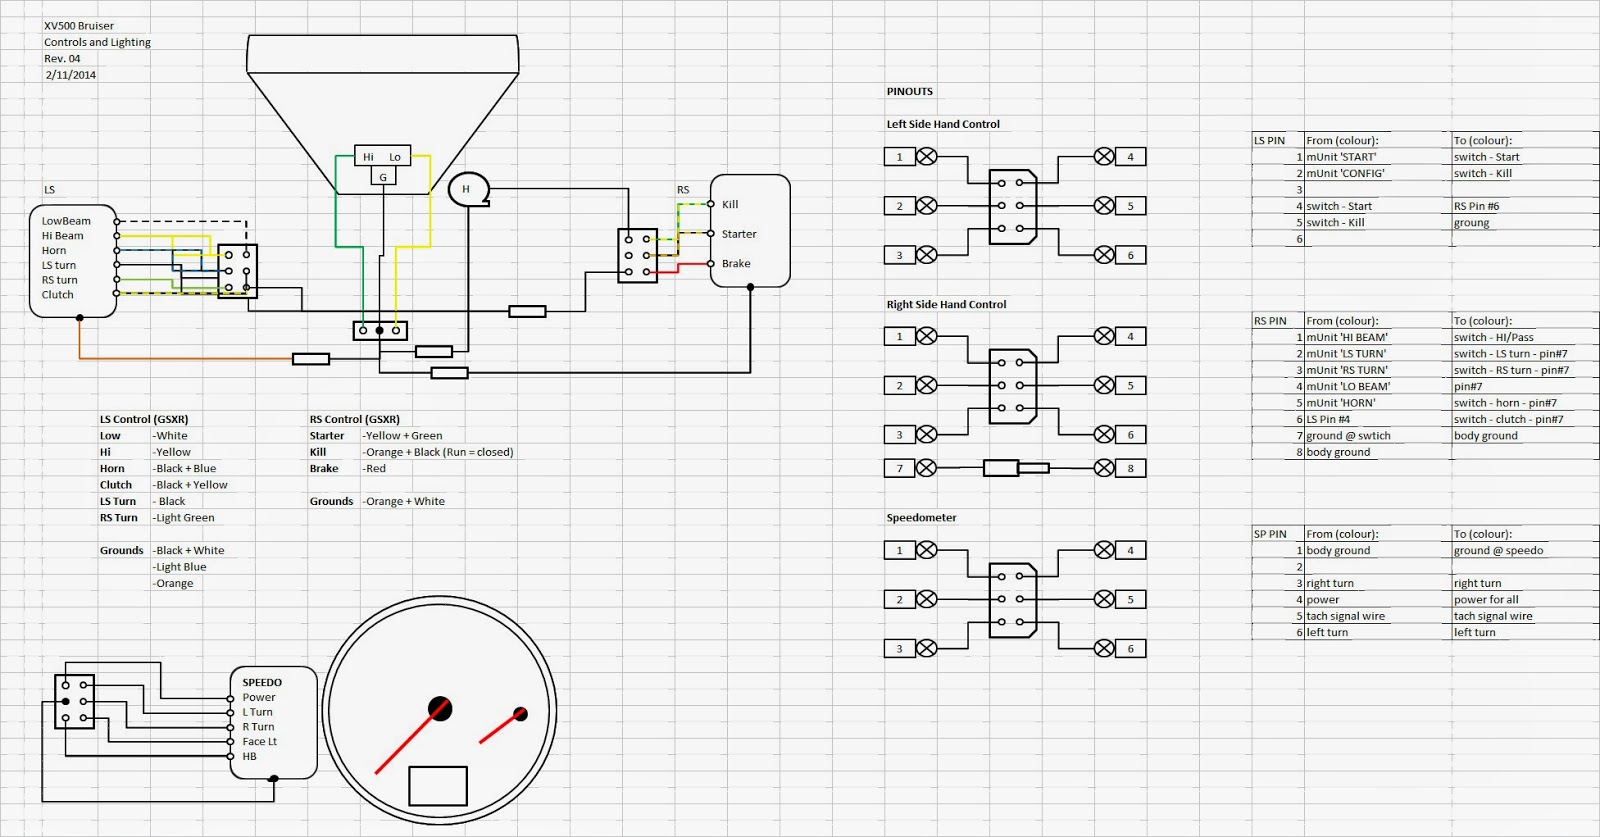 go devil ignition switch wiring diagram wiring library go devil ignition switch wiring diagram [ 1600 x 837 Pixel ]